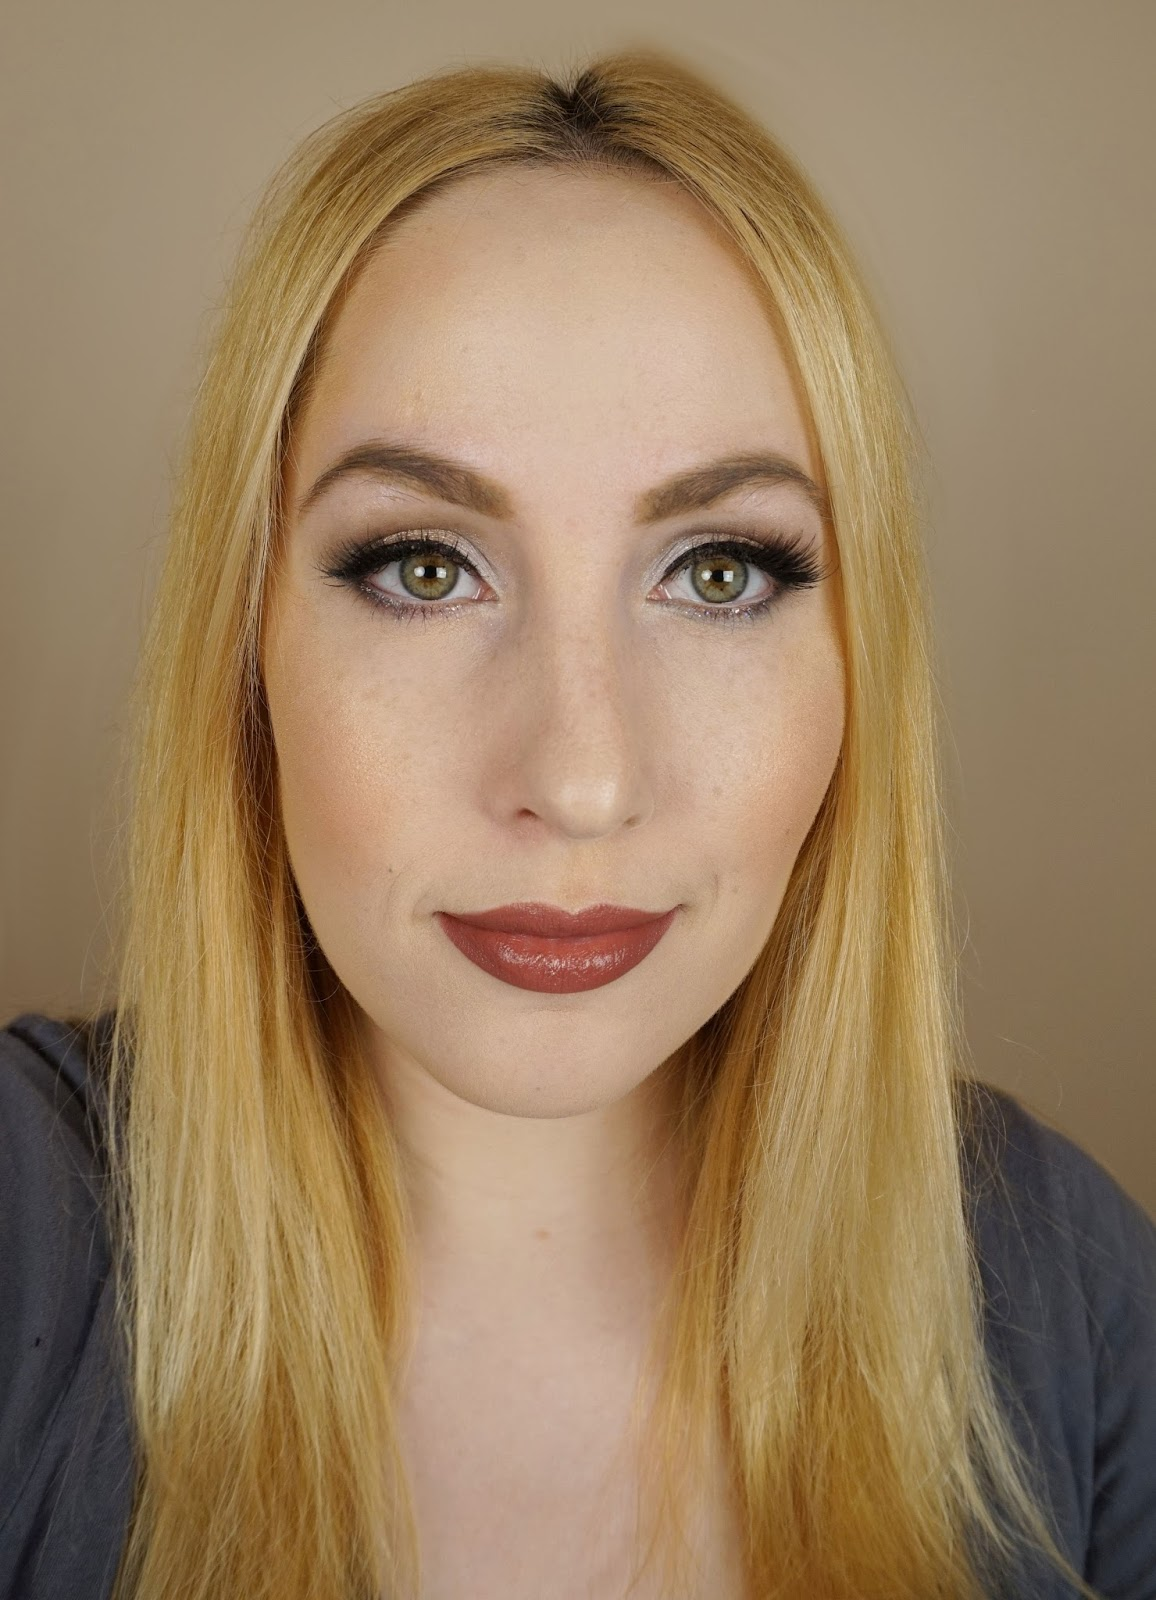 new years makeup dior splendor bite lip lab